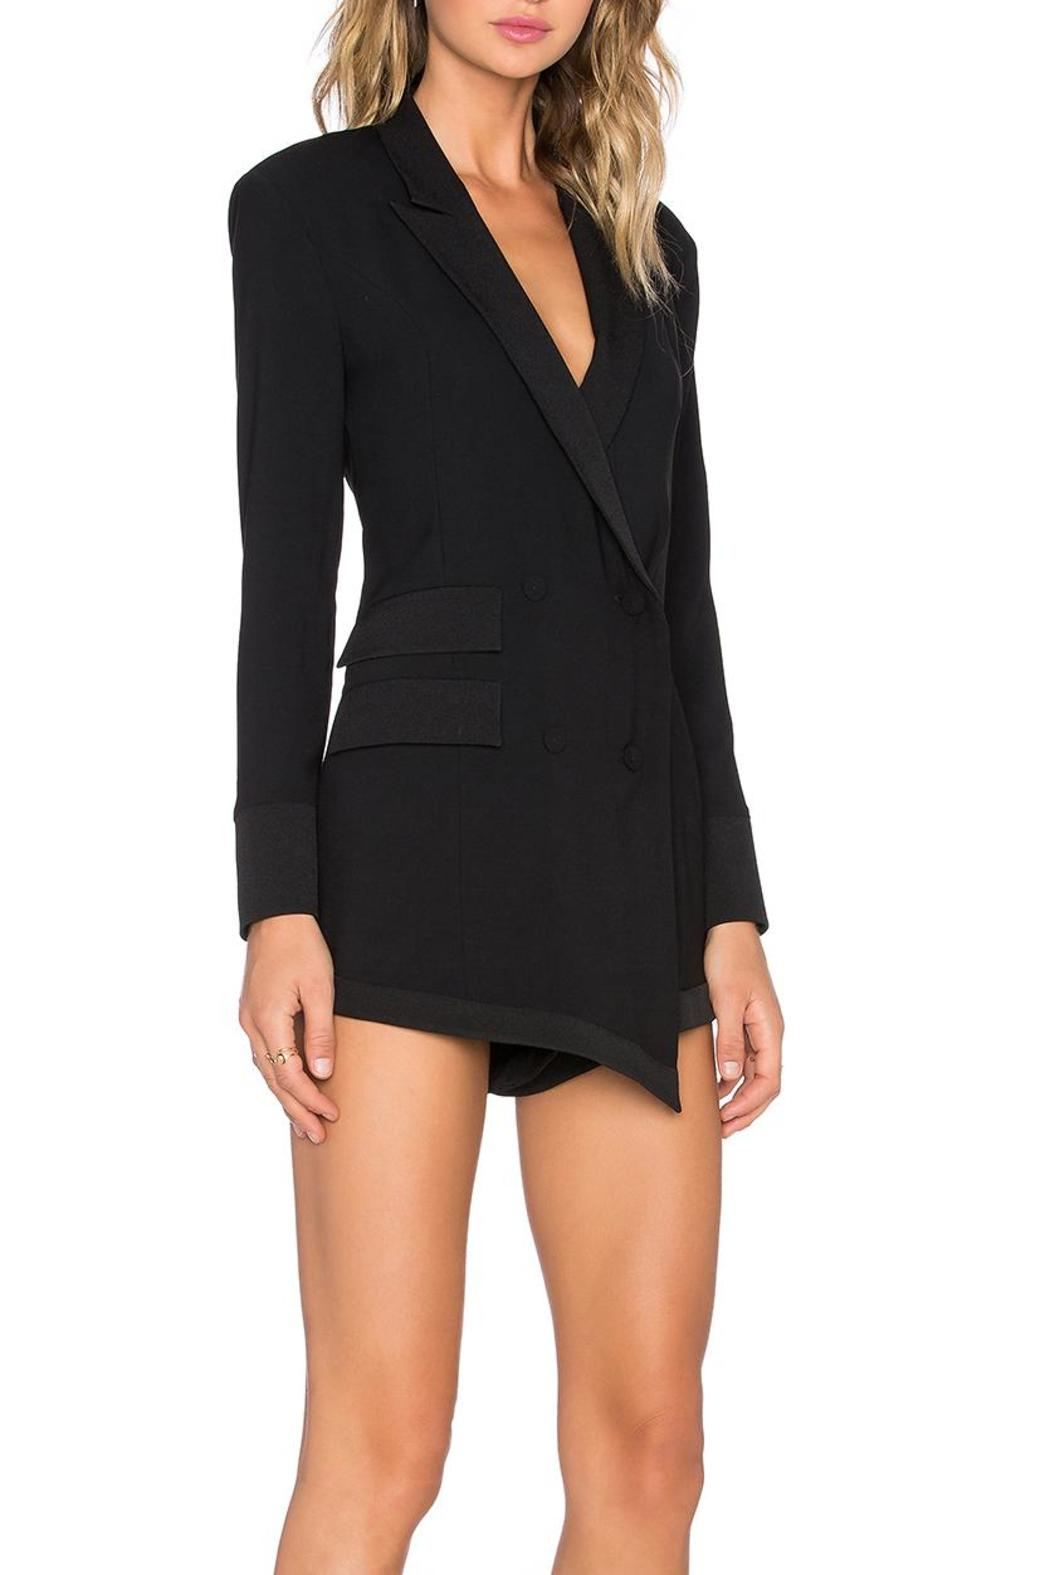 77c5358ff8a0 NBD Business Caj Romper from Chicago by Elle Val Boutique — Shoptiques